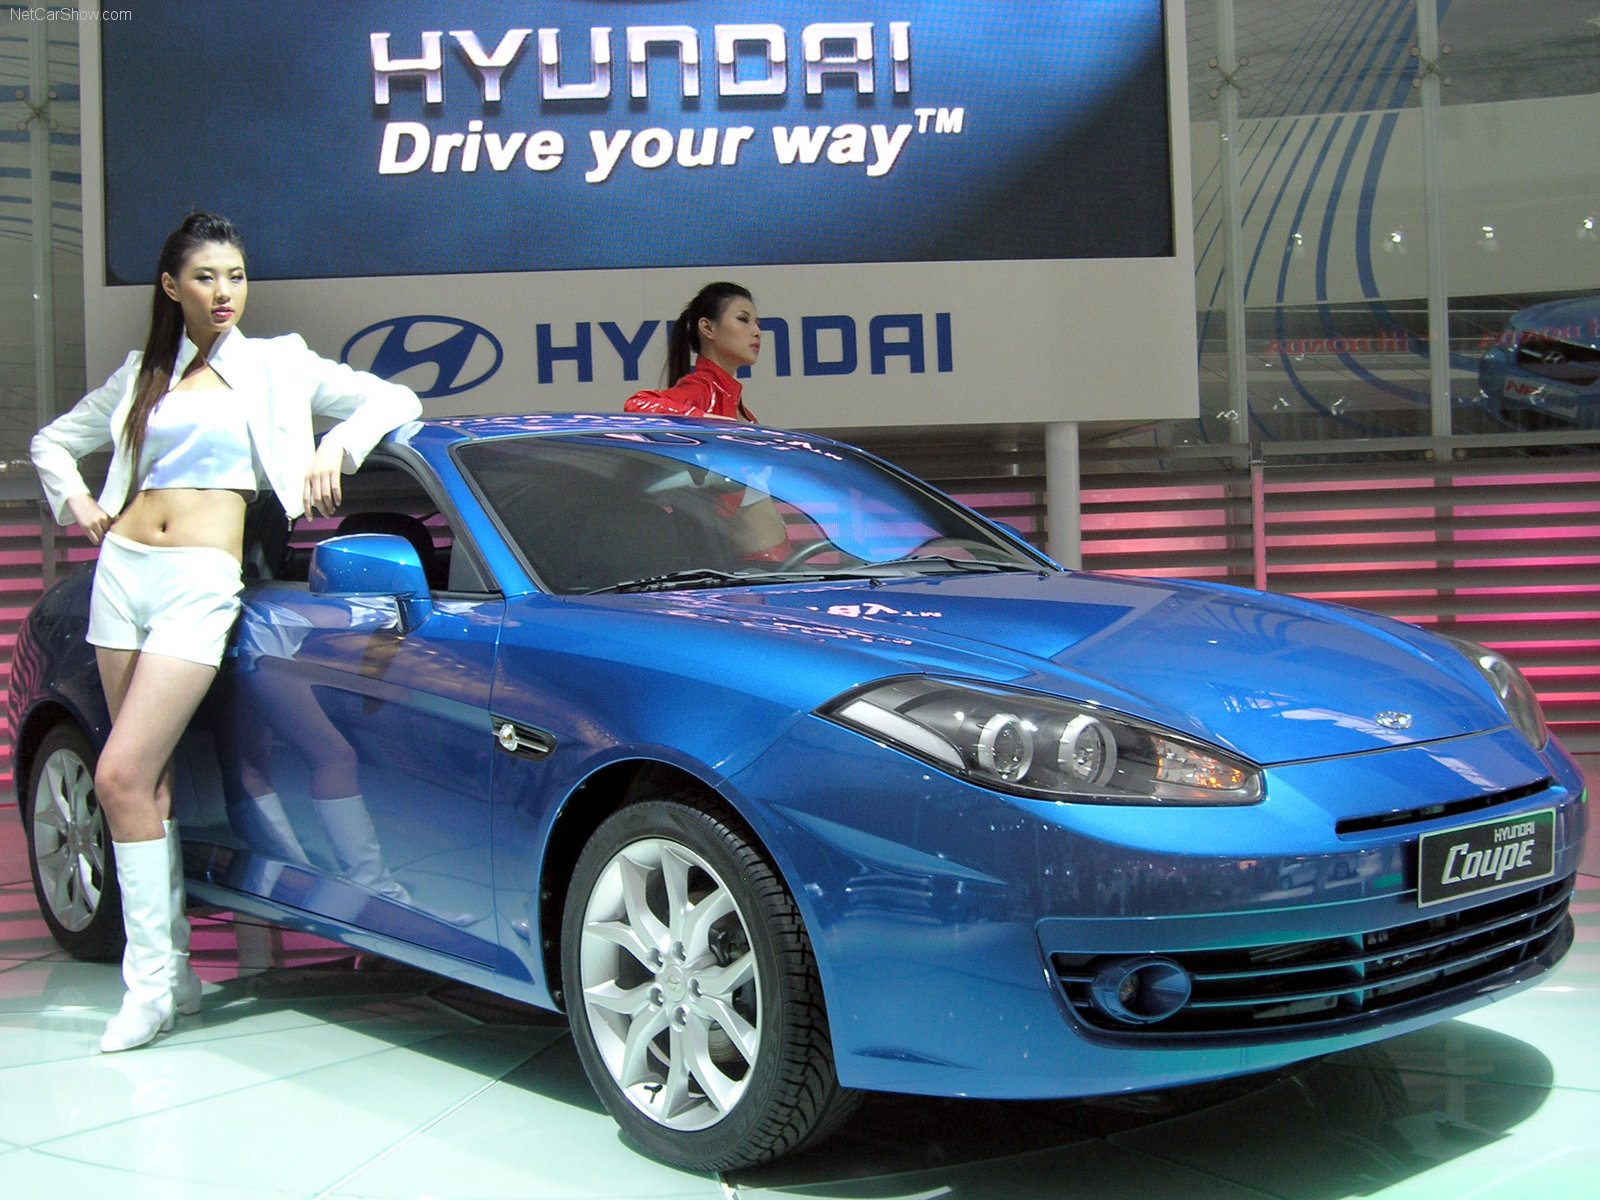 Hyundai Coupe photo 38038